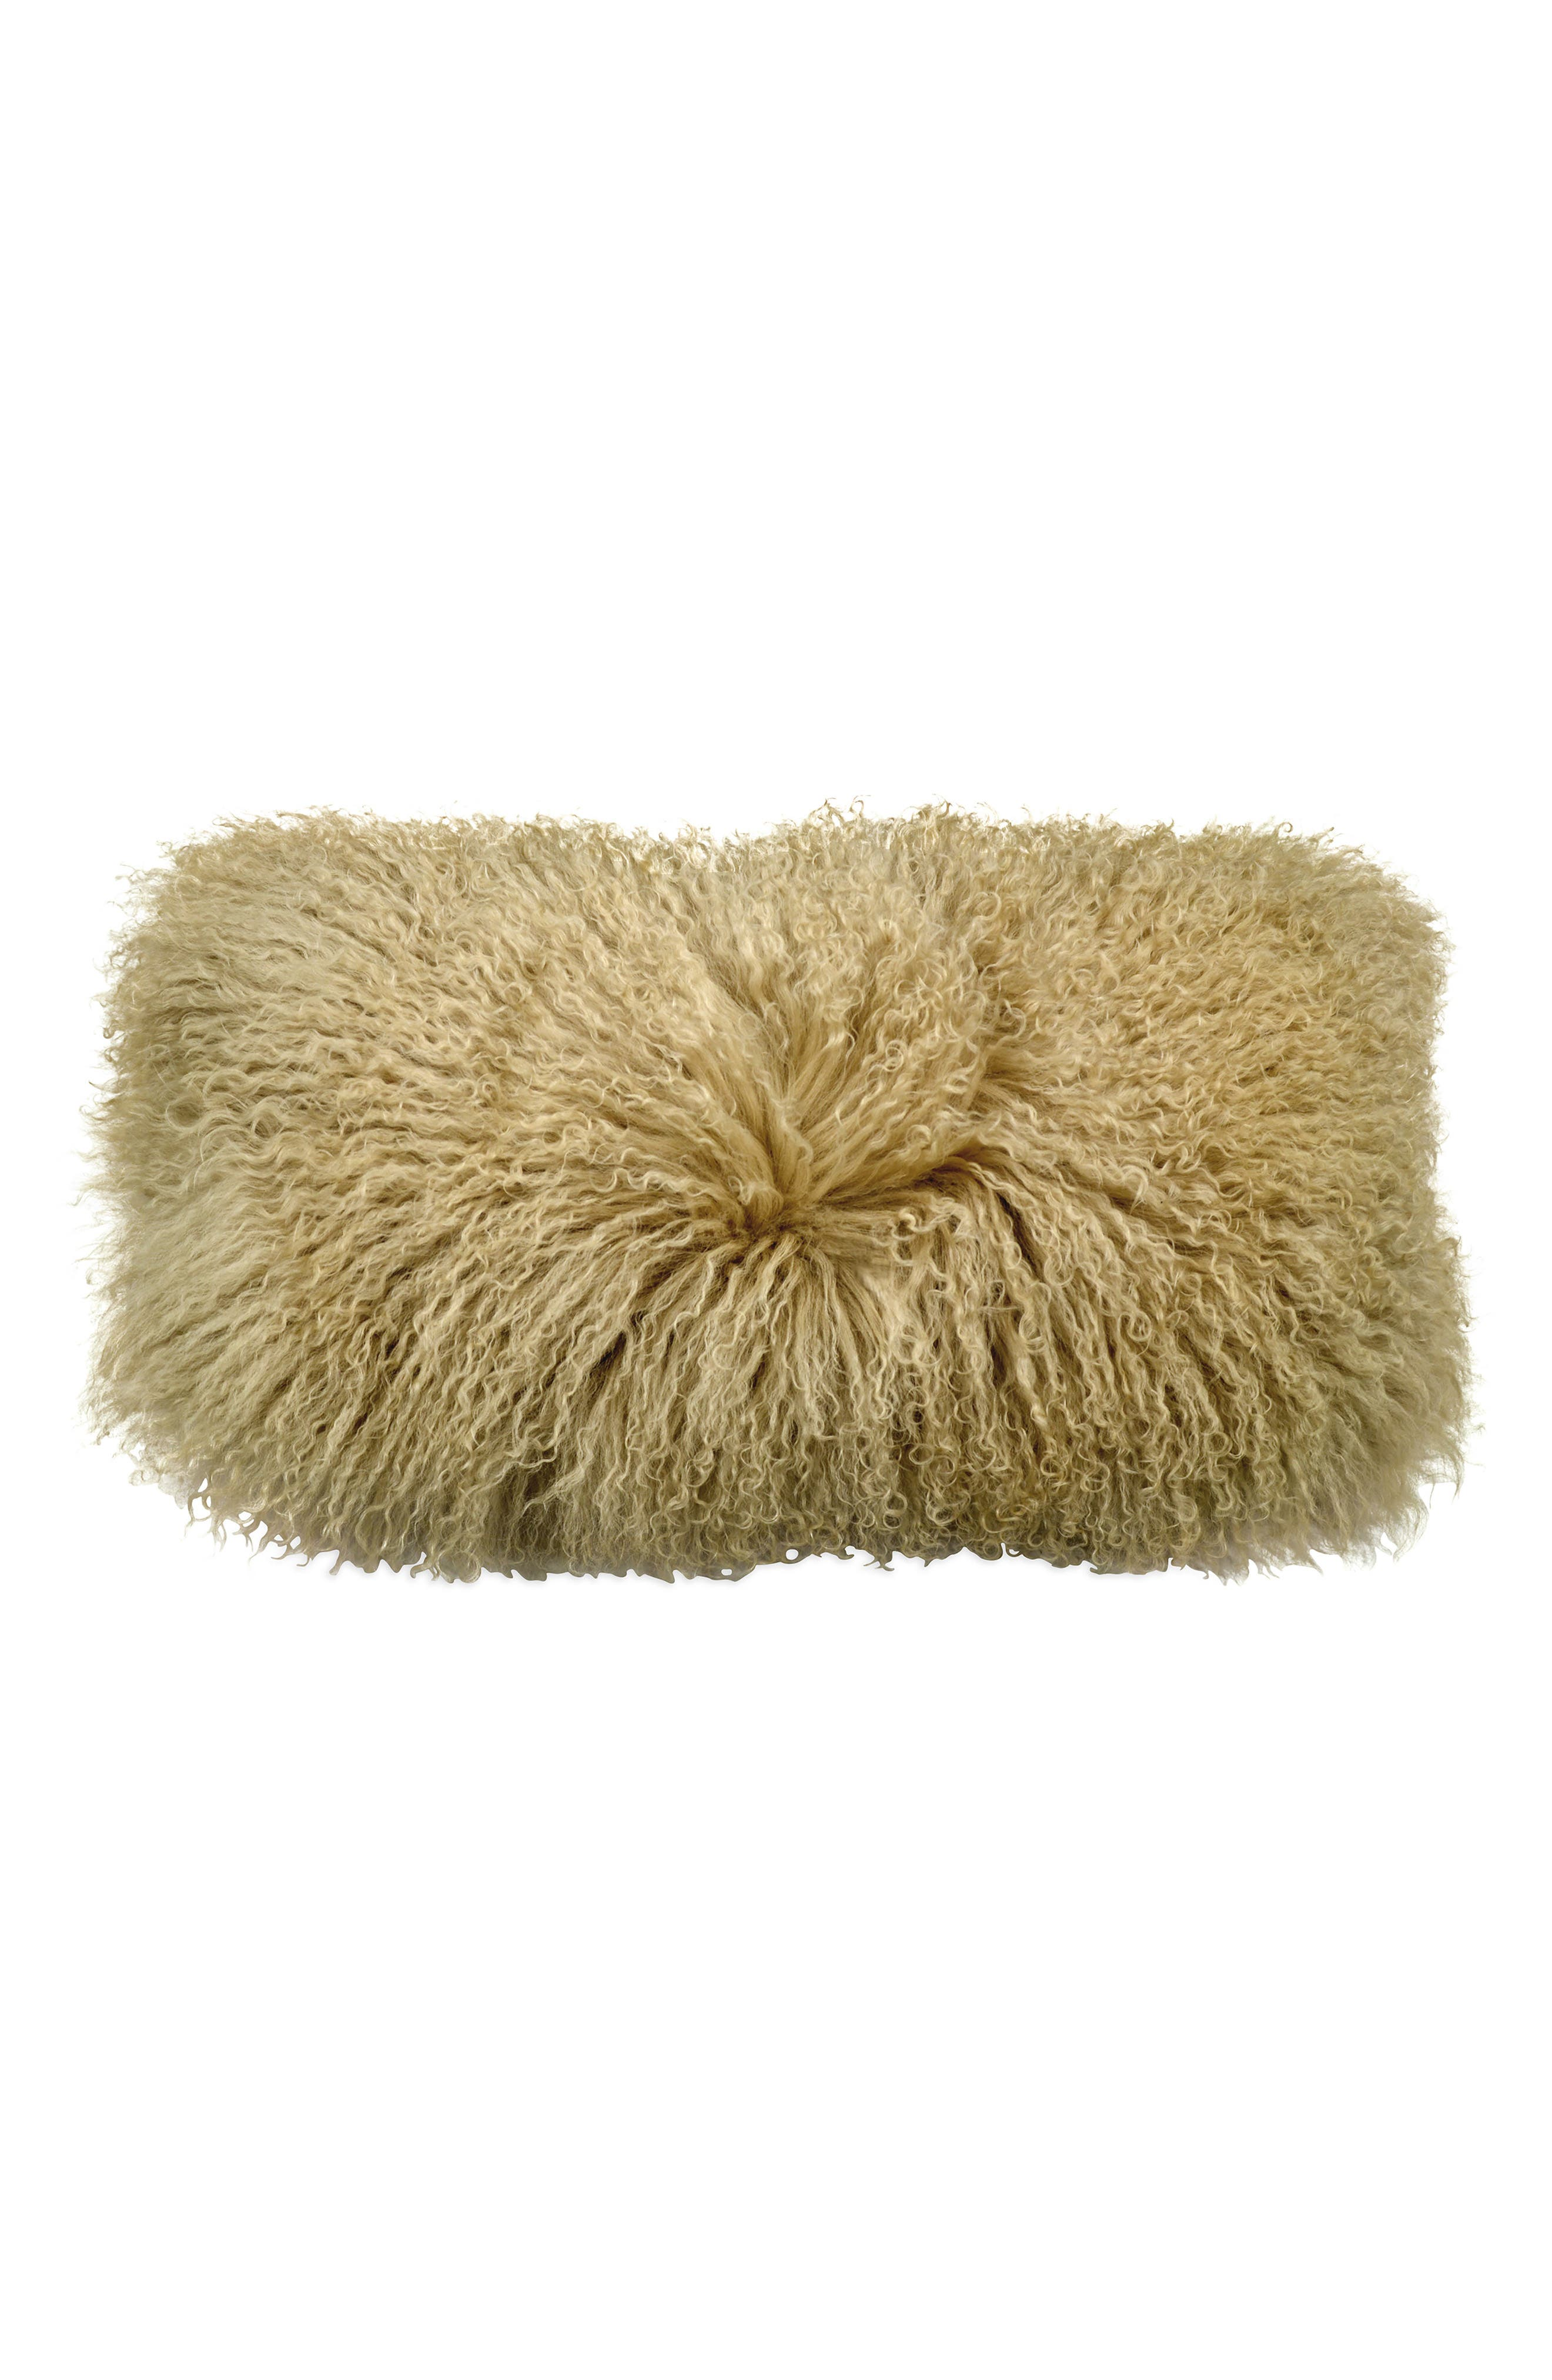 Donna Karan Flokati Genuine Shearling Accent Pillow,                         Main,                         color, Gold Dust